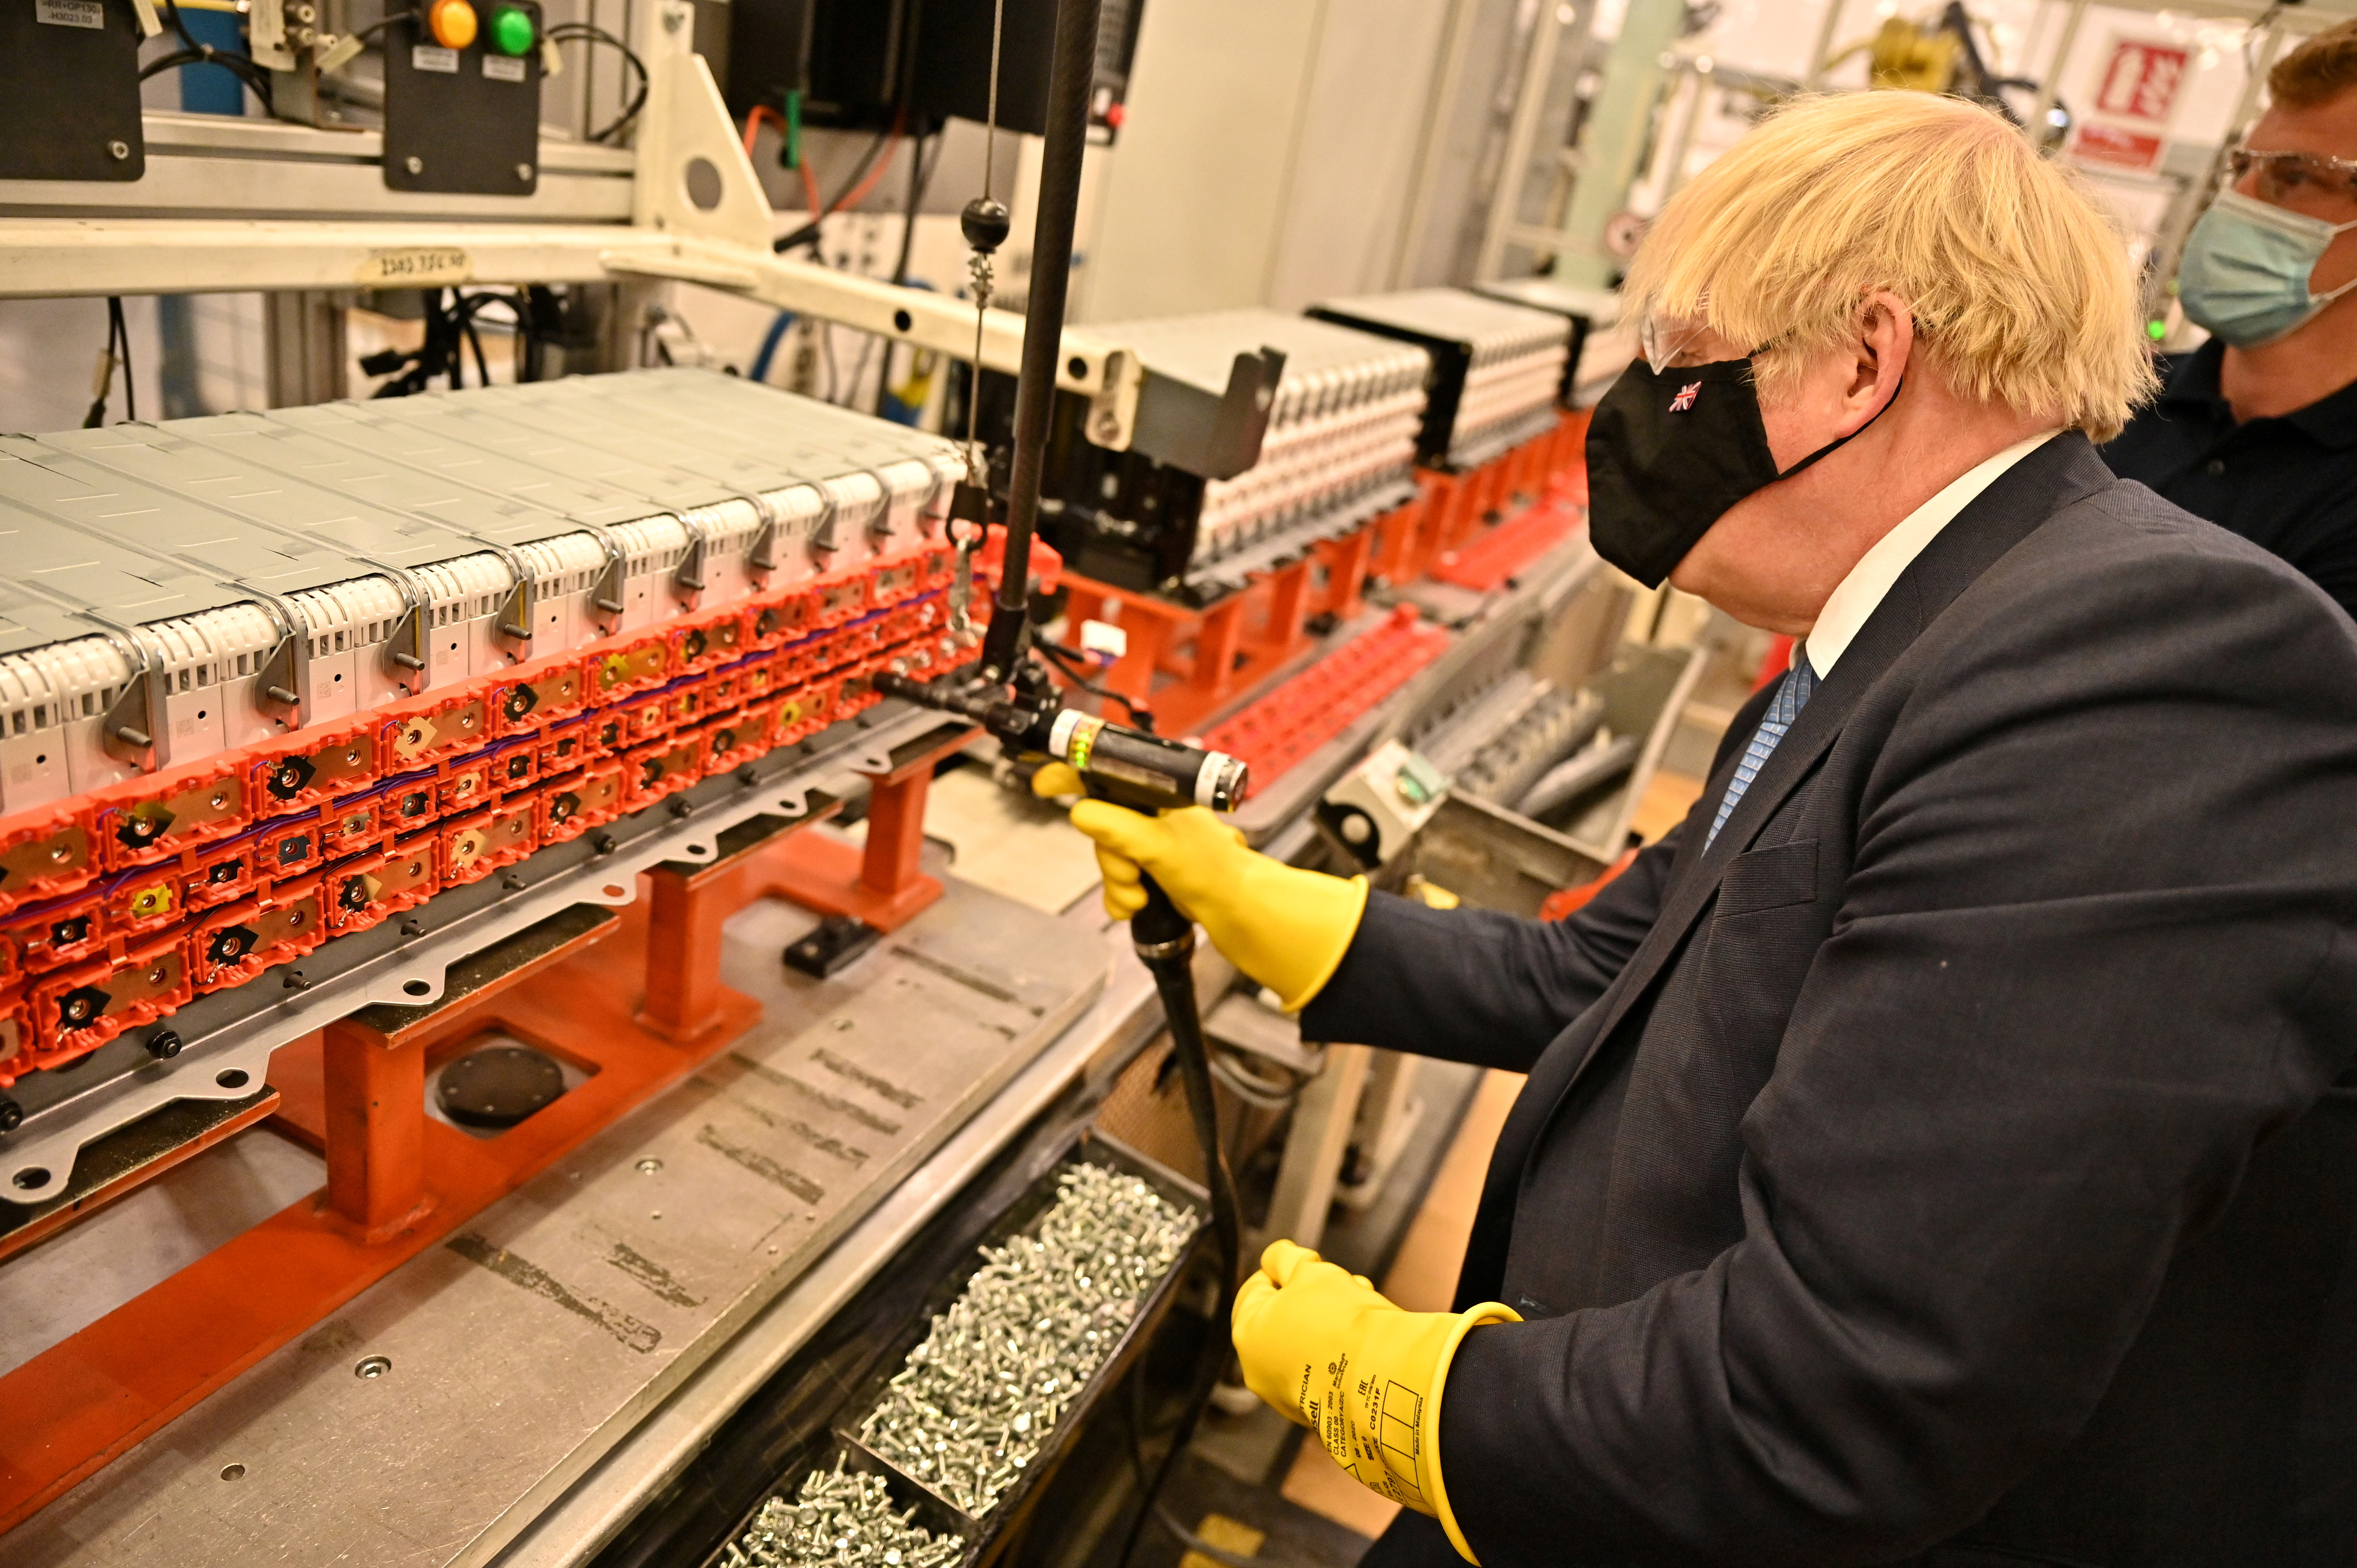 Britain's Prime Minister Boris Johnson visits the Envision AESC Holding Ltd. battery manufacturing facility inside the Nissan Motor Co. plant in Sunderland, Britain July 1, 2021. Jeff J Mitchell/Pool via REUTERS